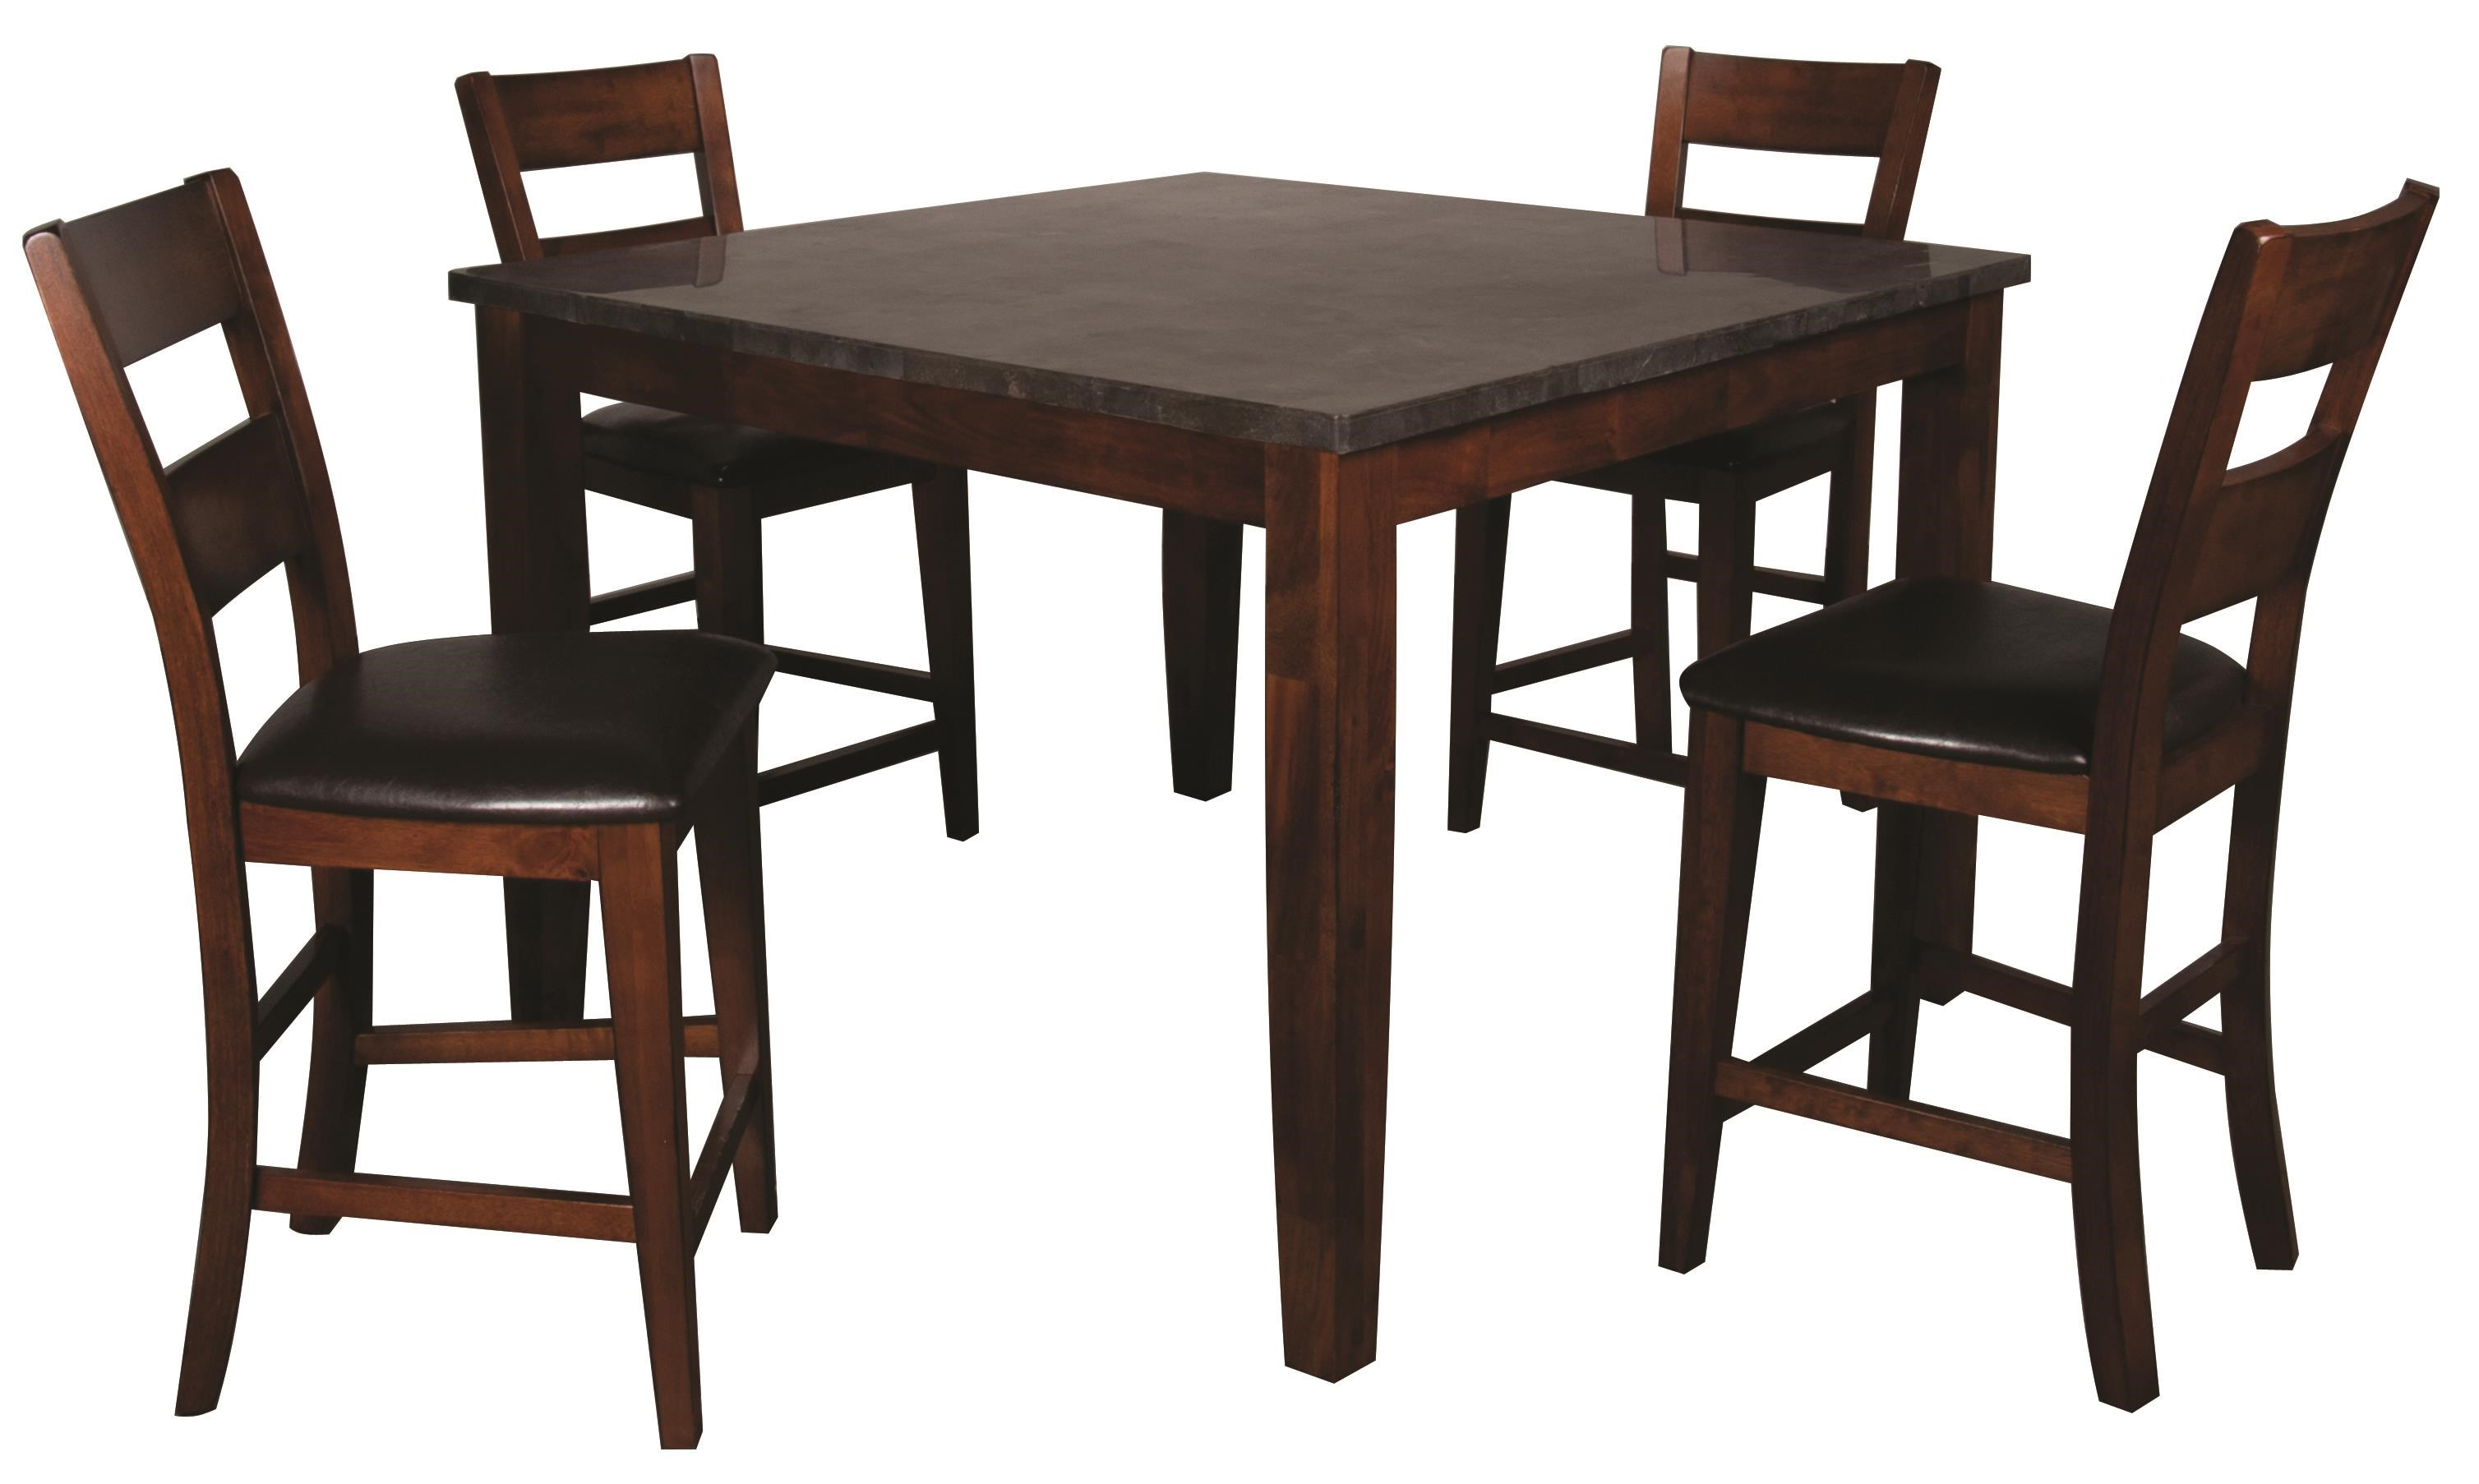 Holland House Melbourne 5 Piece Pub Height Dining Set With Blue Stone Top Morris Home Dining 5 Piece Sets